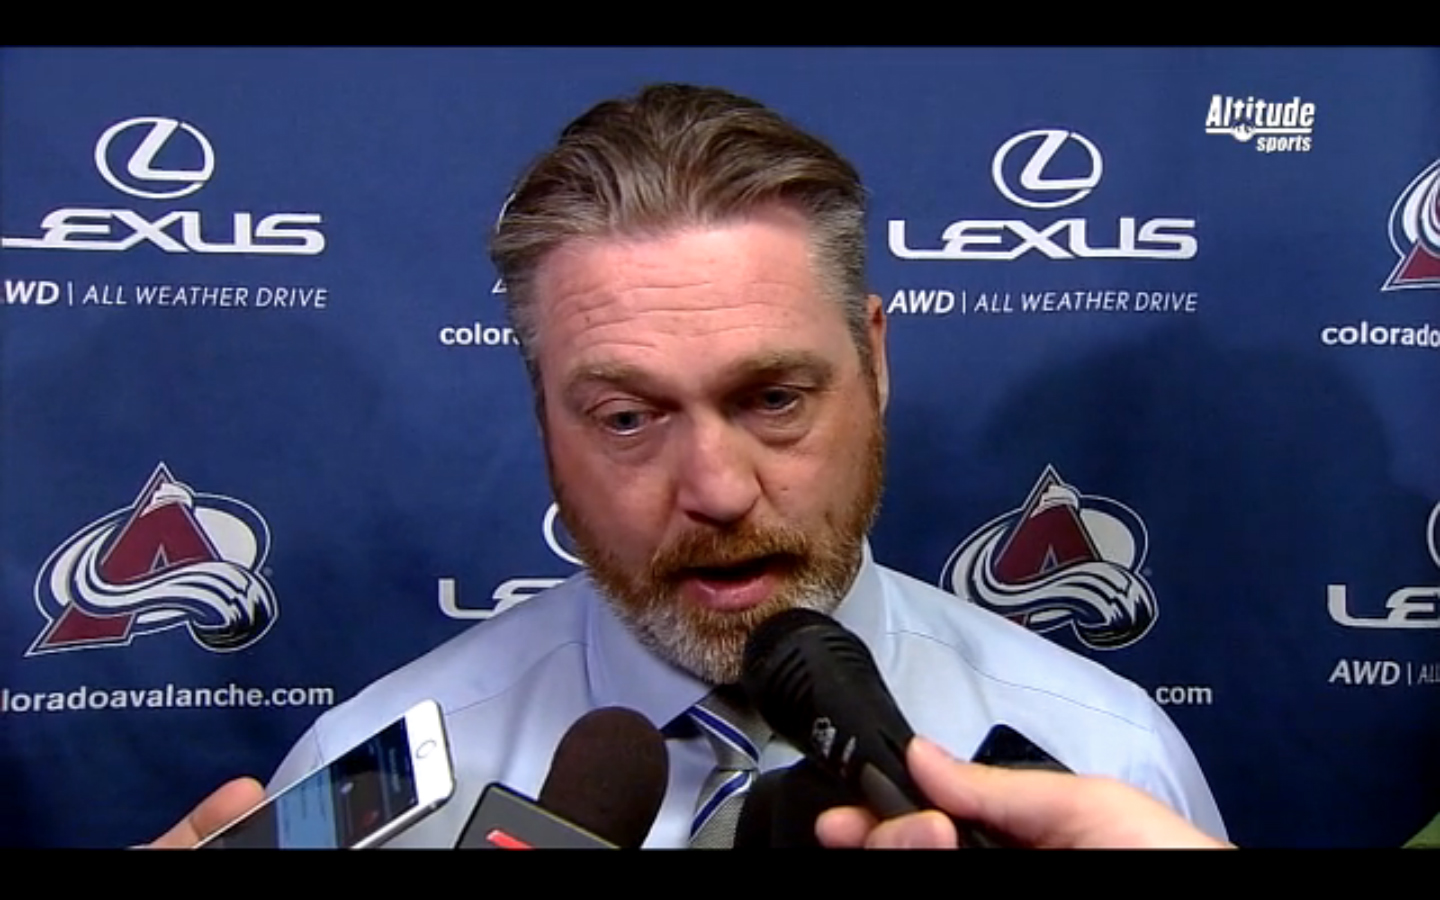 Patrick-Roy-Post-Game-031816.jpg